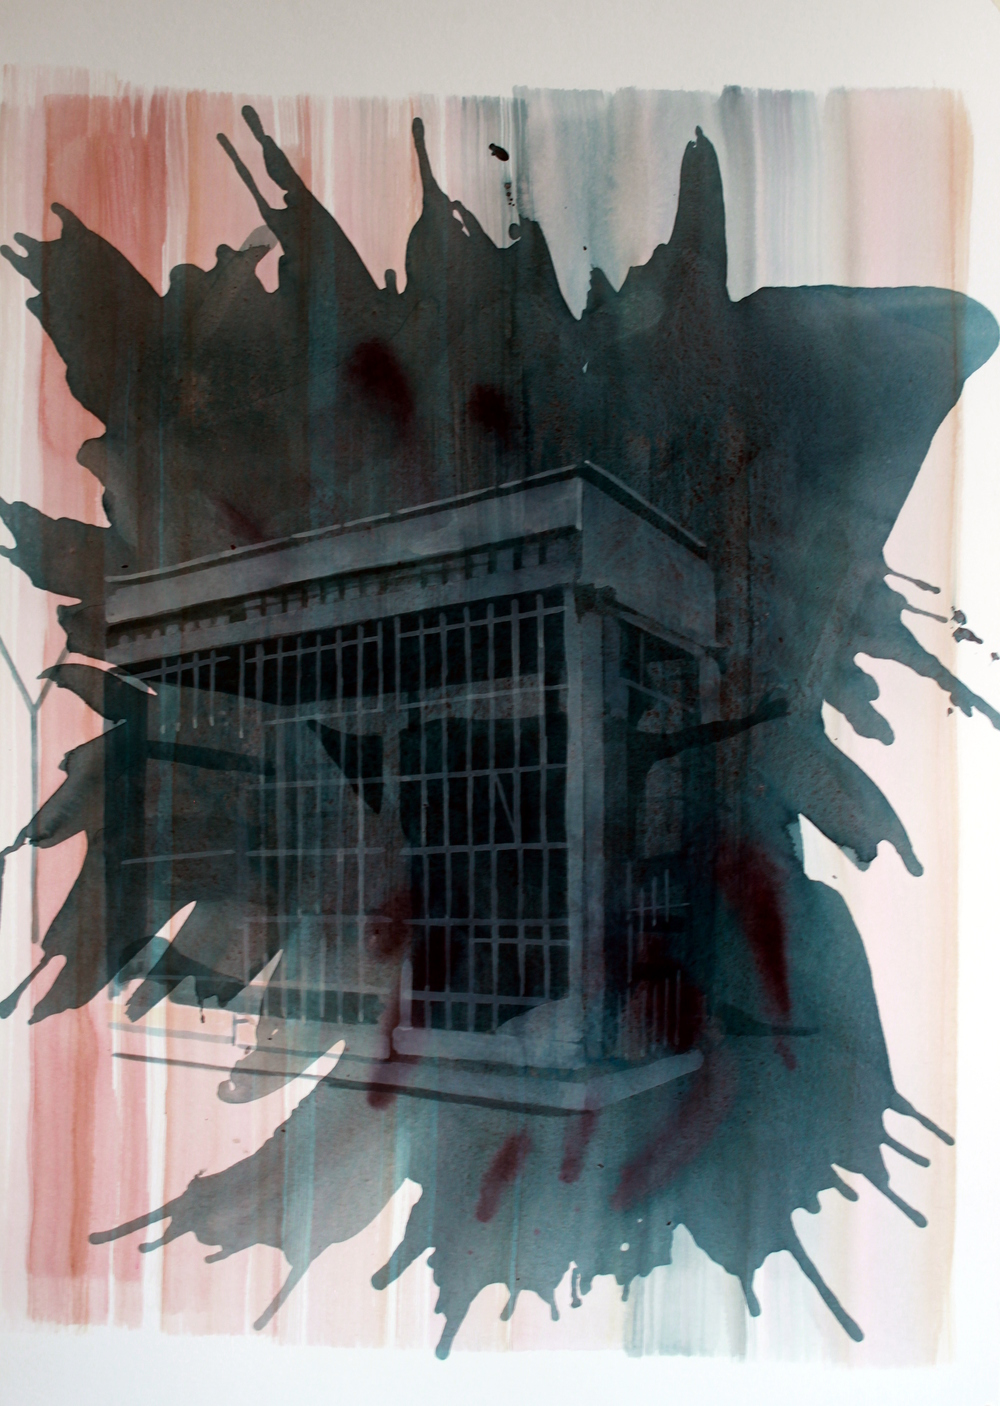 GUANTANAMO BAY, Acrylic on paper, 57 x 78cm, 2012